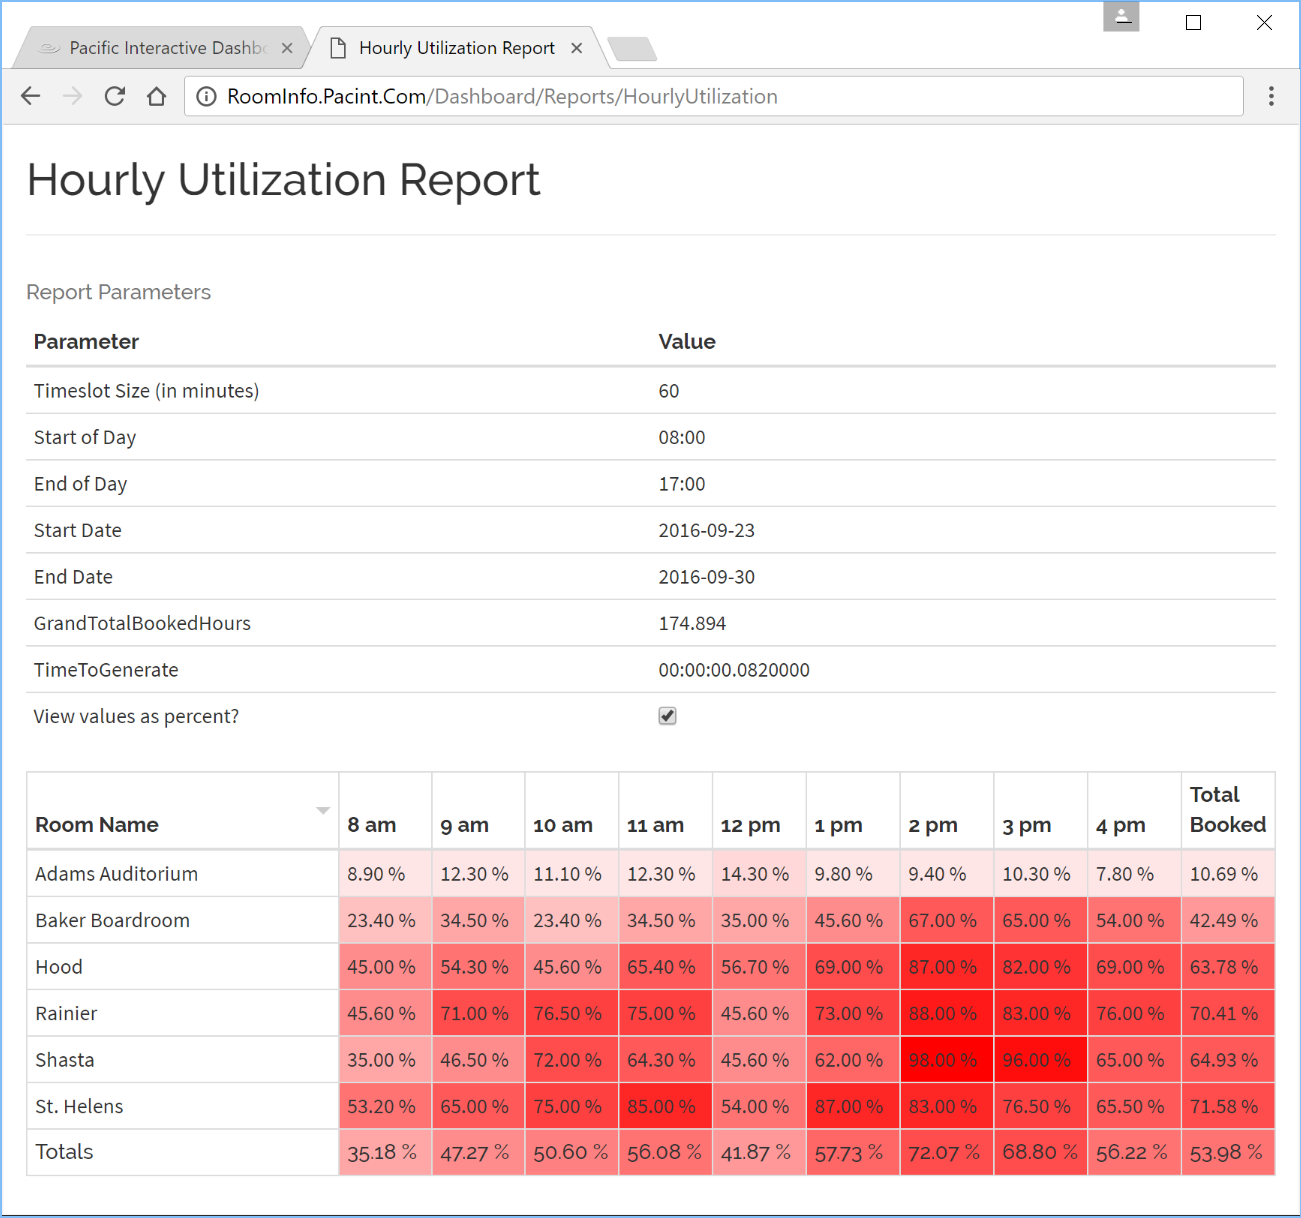 Pacific Interactive Report Generator provides insight on system performance, usage and utilization, helping to identify and address operational inefficiencies.